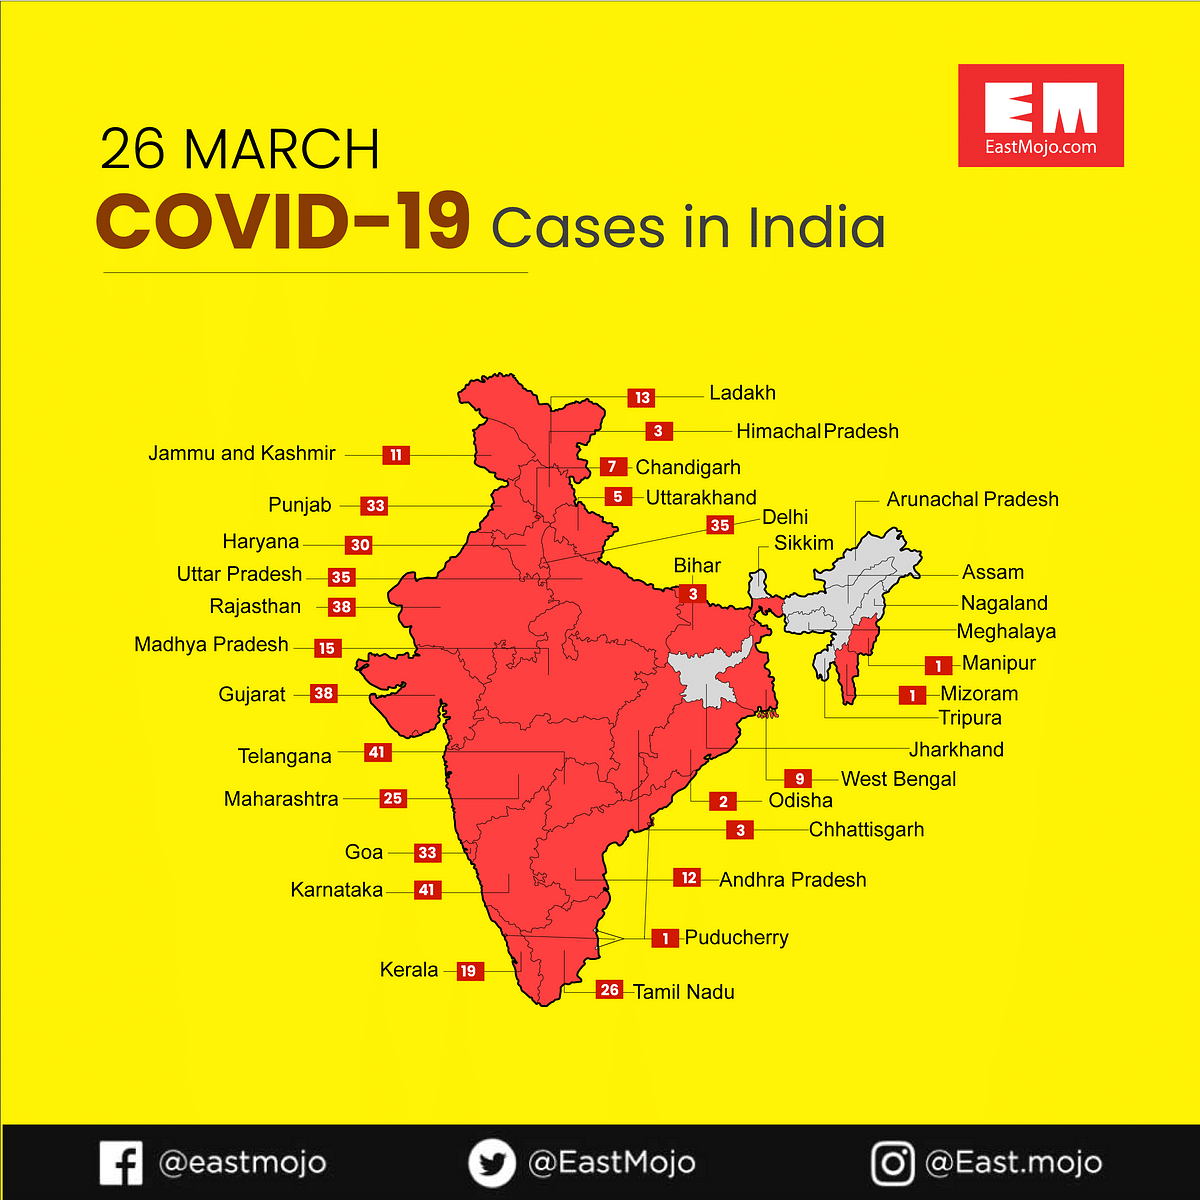 State-wise coronavirus cases in India till March 26, 2020